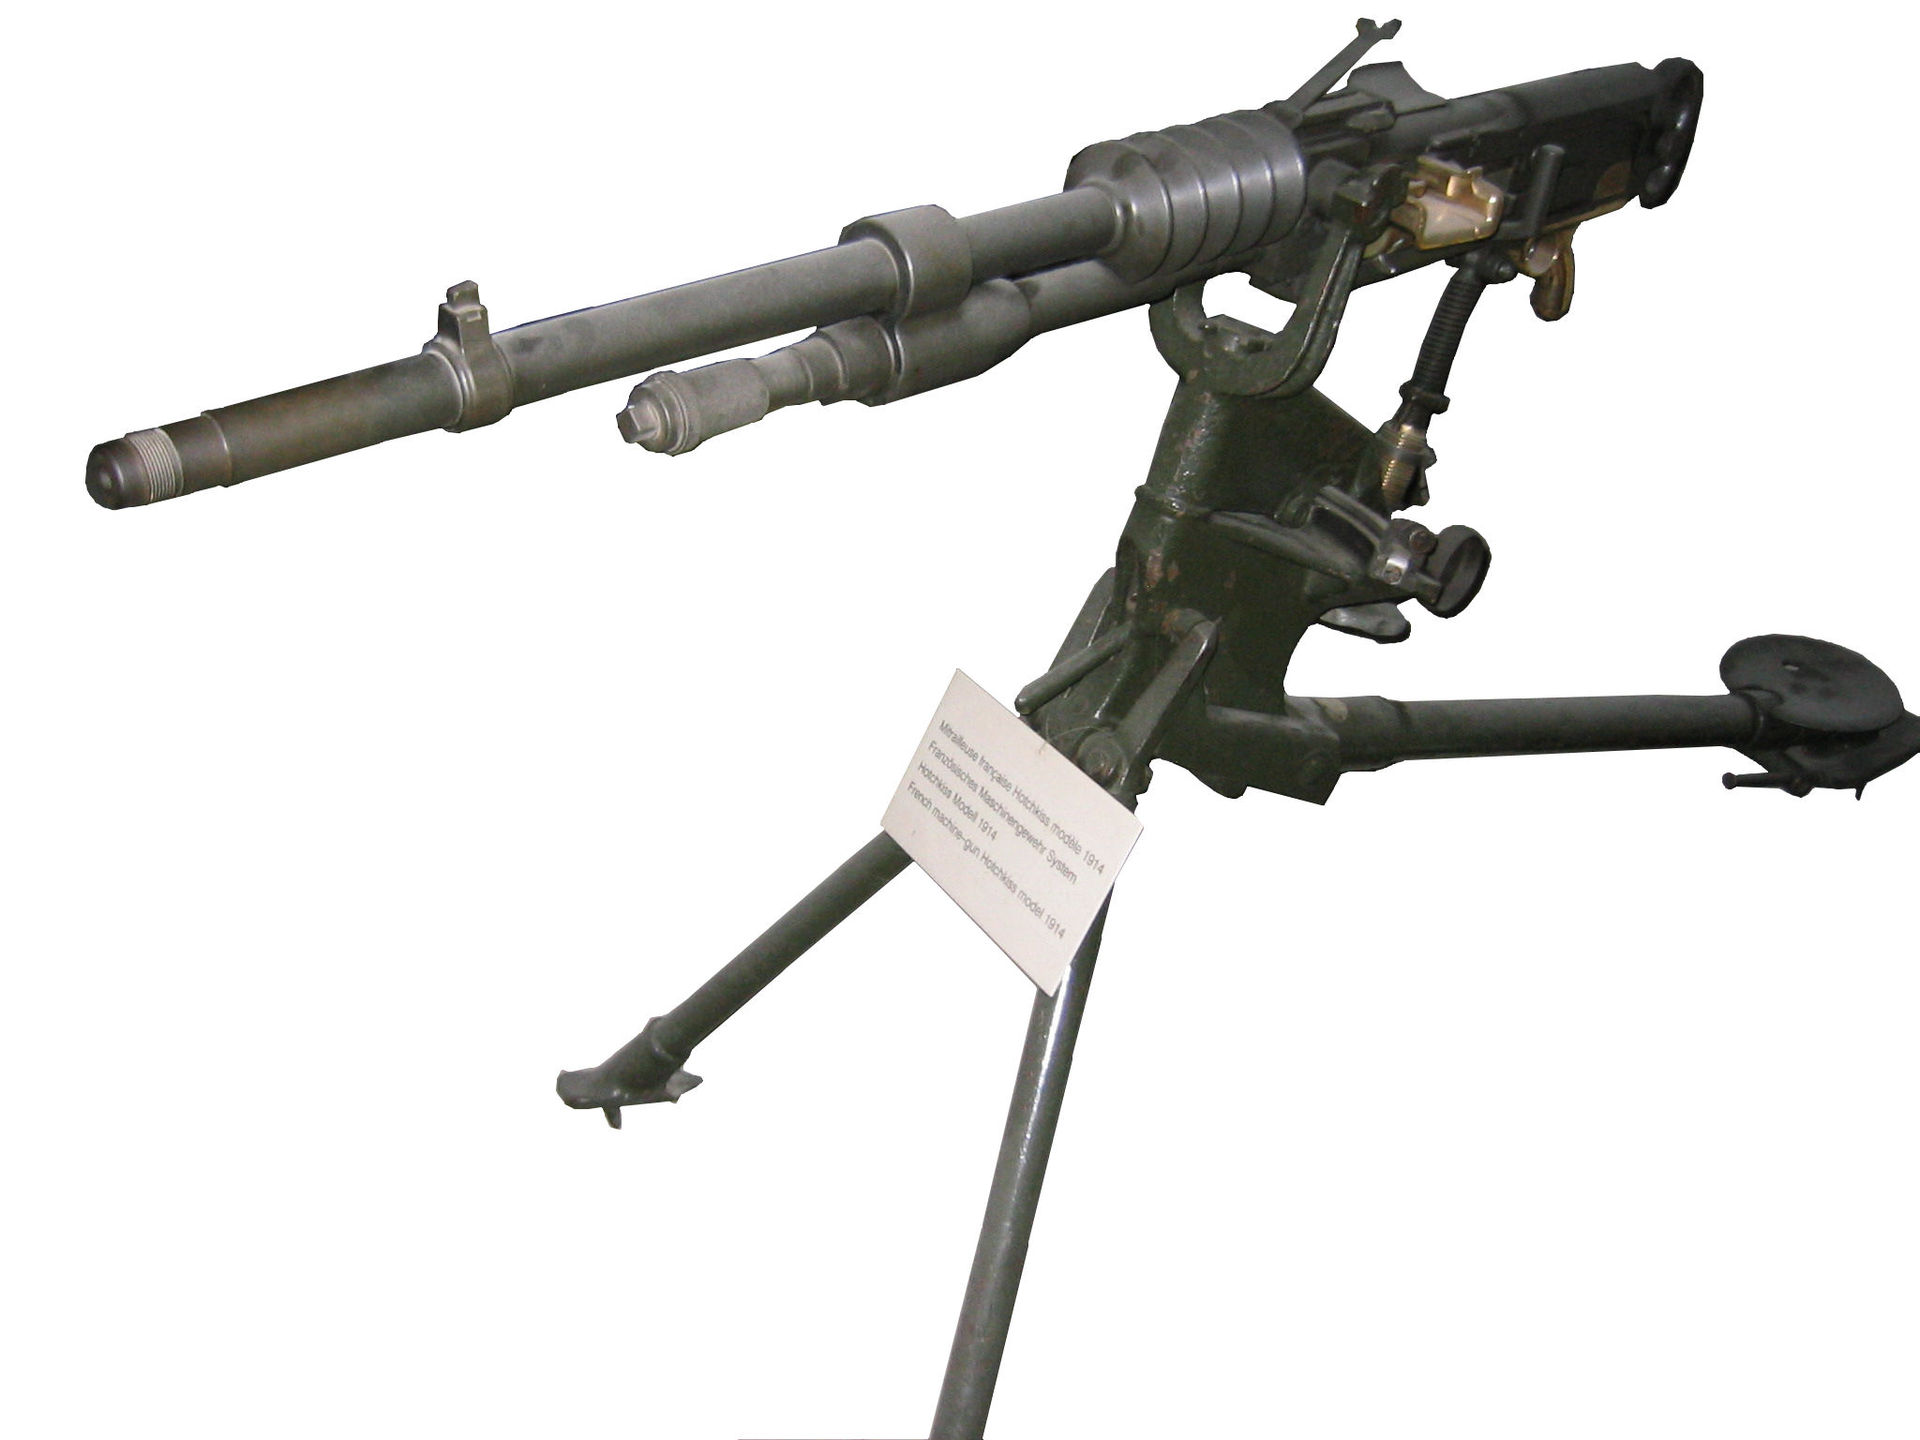 https://upload.wikimedia.org/wikipedia/commons/thumb/6/68/French_machine-gun_Hotchkiss_model_1914.JPG/1920px-French_machine-gun_Hotchkiss_model_1914.JPG